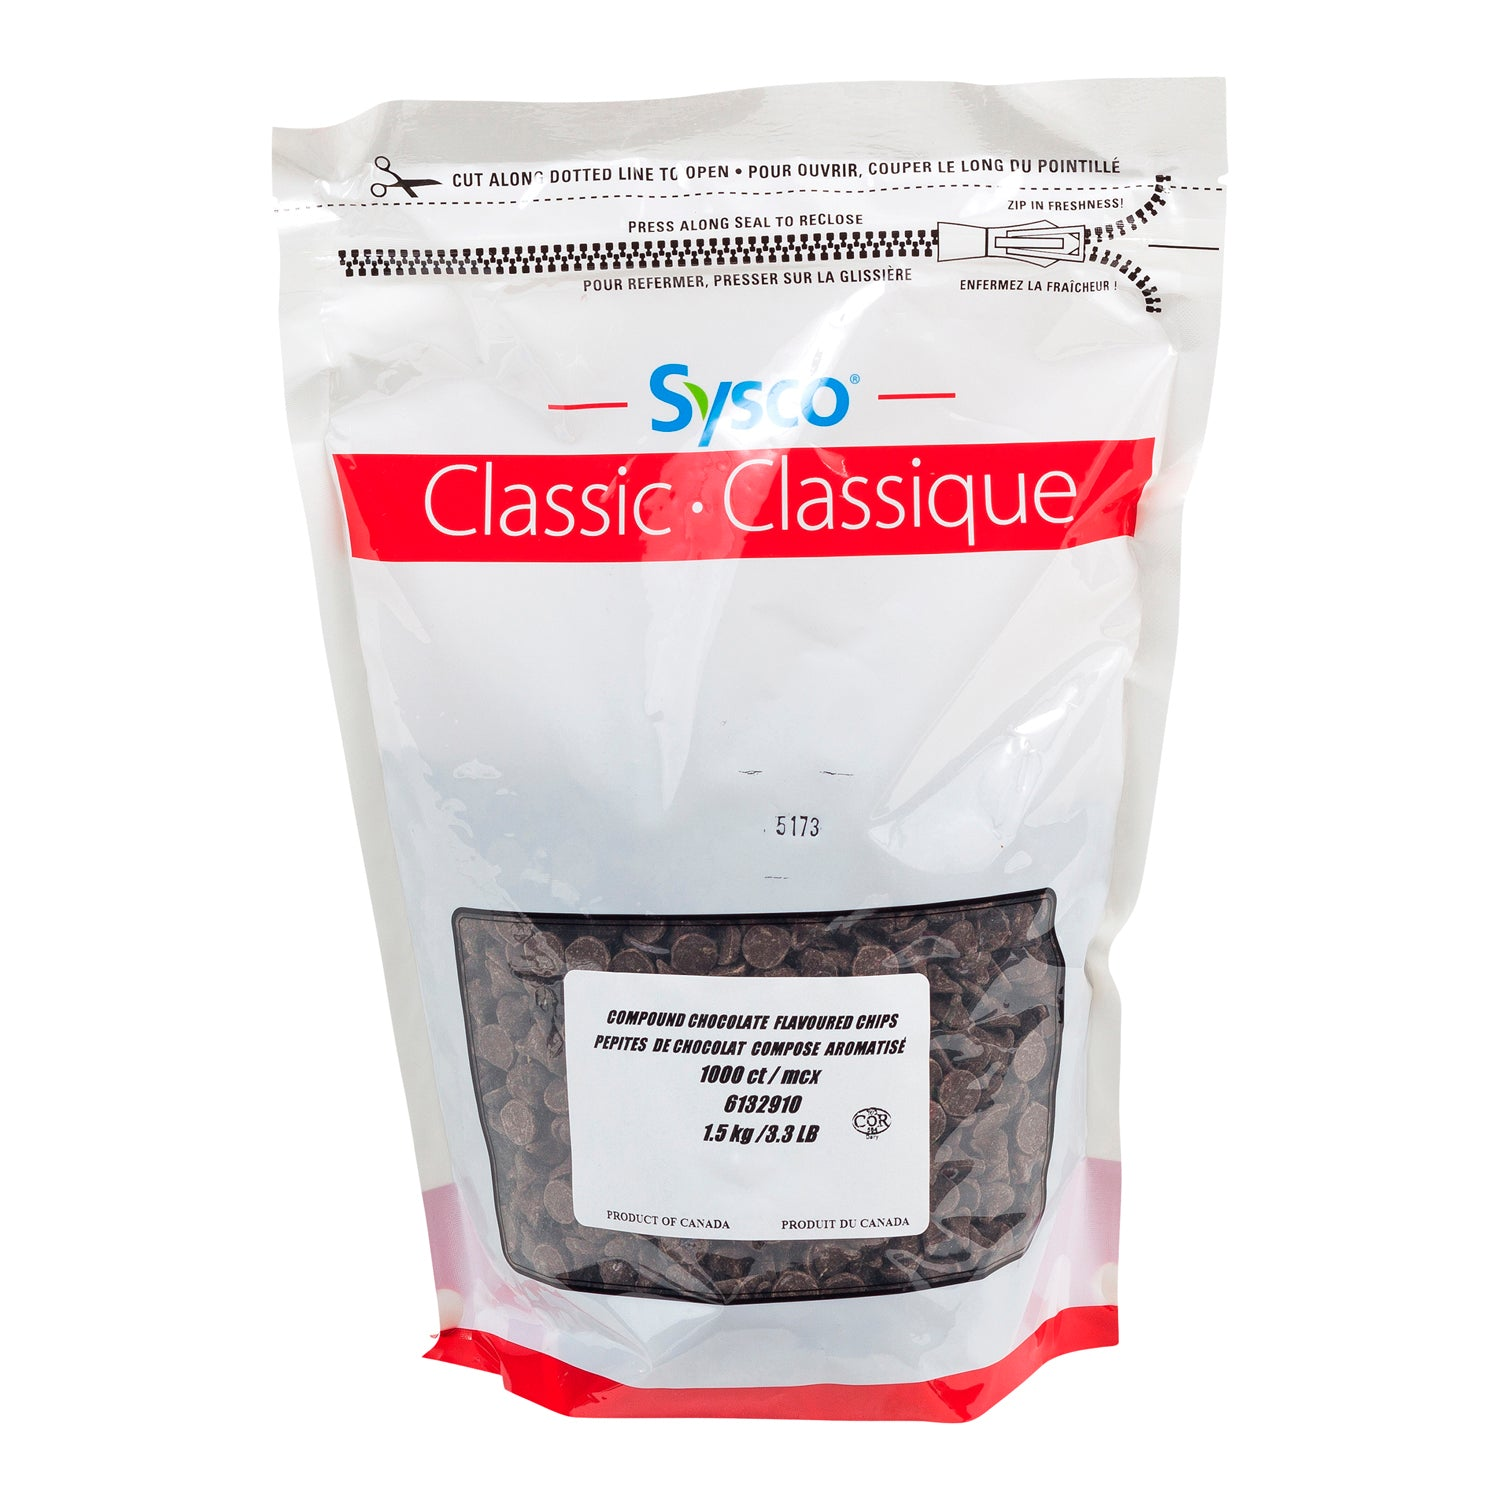 Sysco Classic Chocolate Chip Compound Baking 1.5 kg - 2 Pack [$9.66/kg]